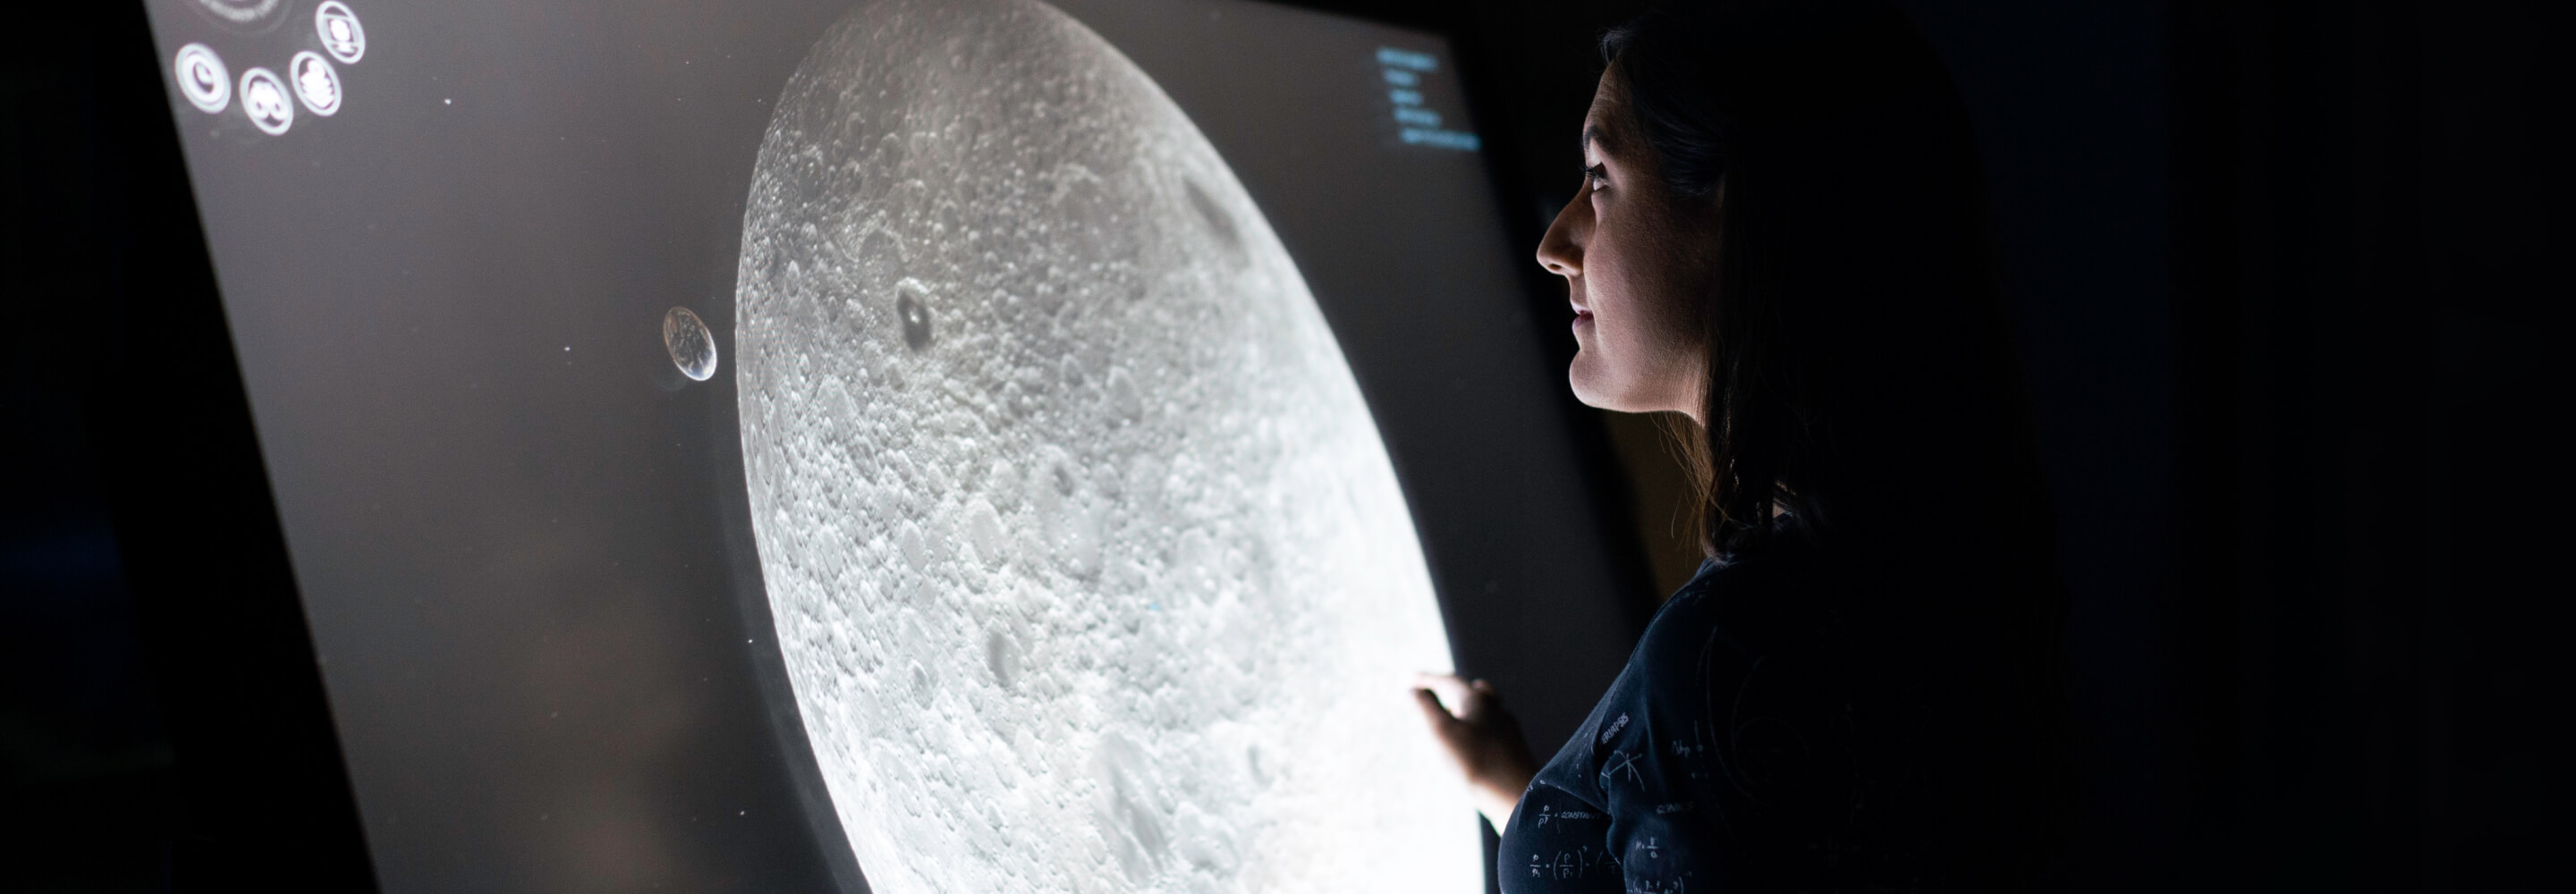 Woman looking at a screen showing information about Earth's moon